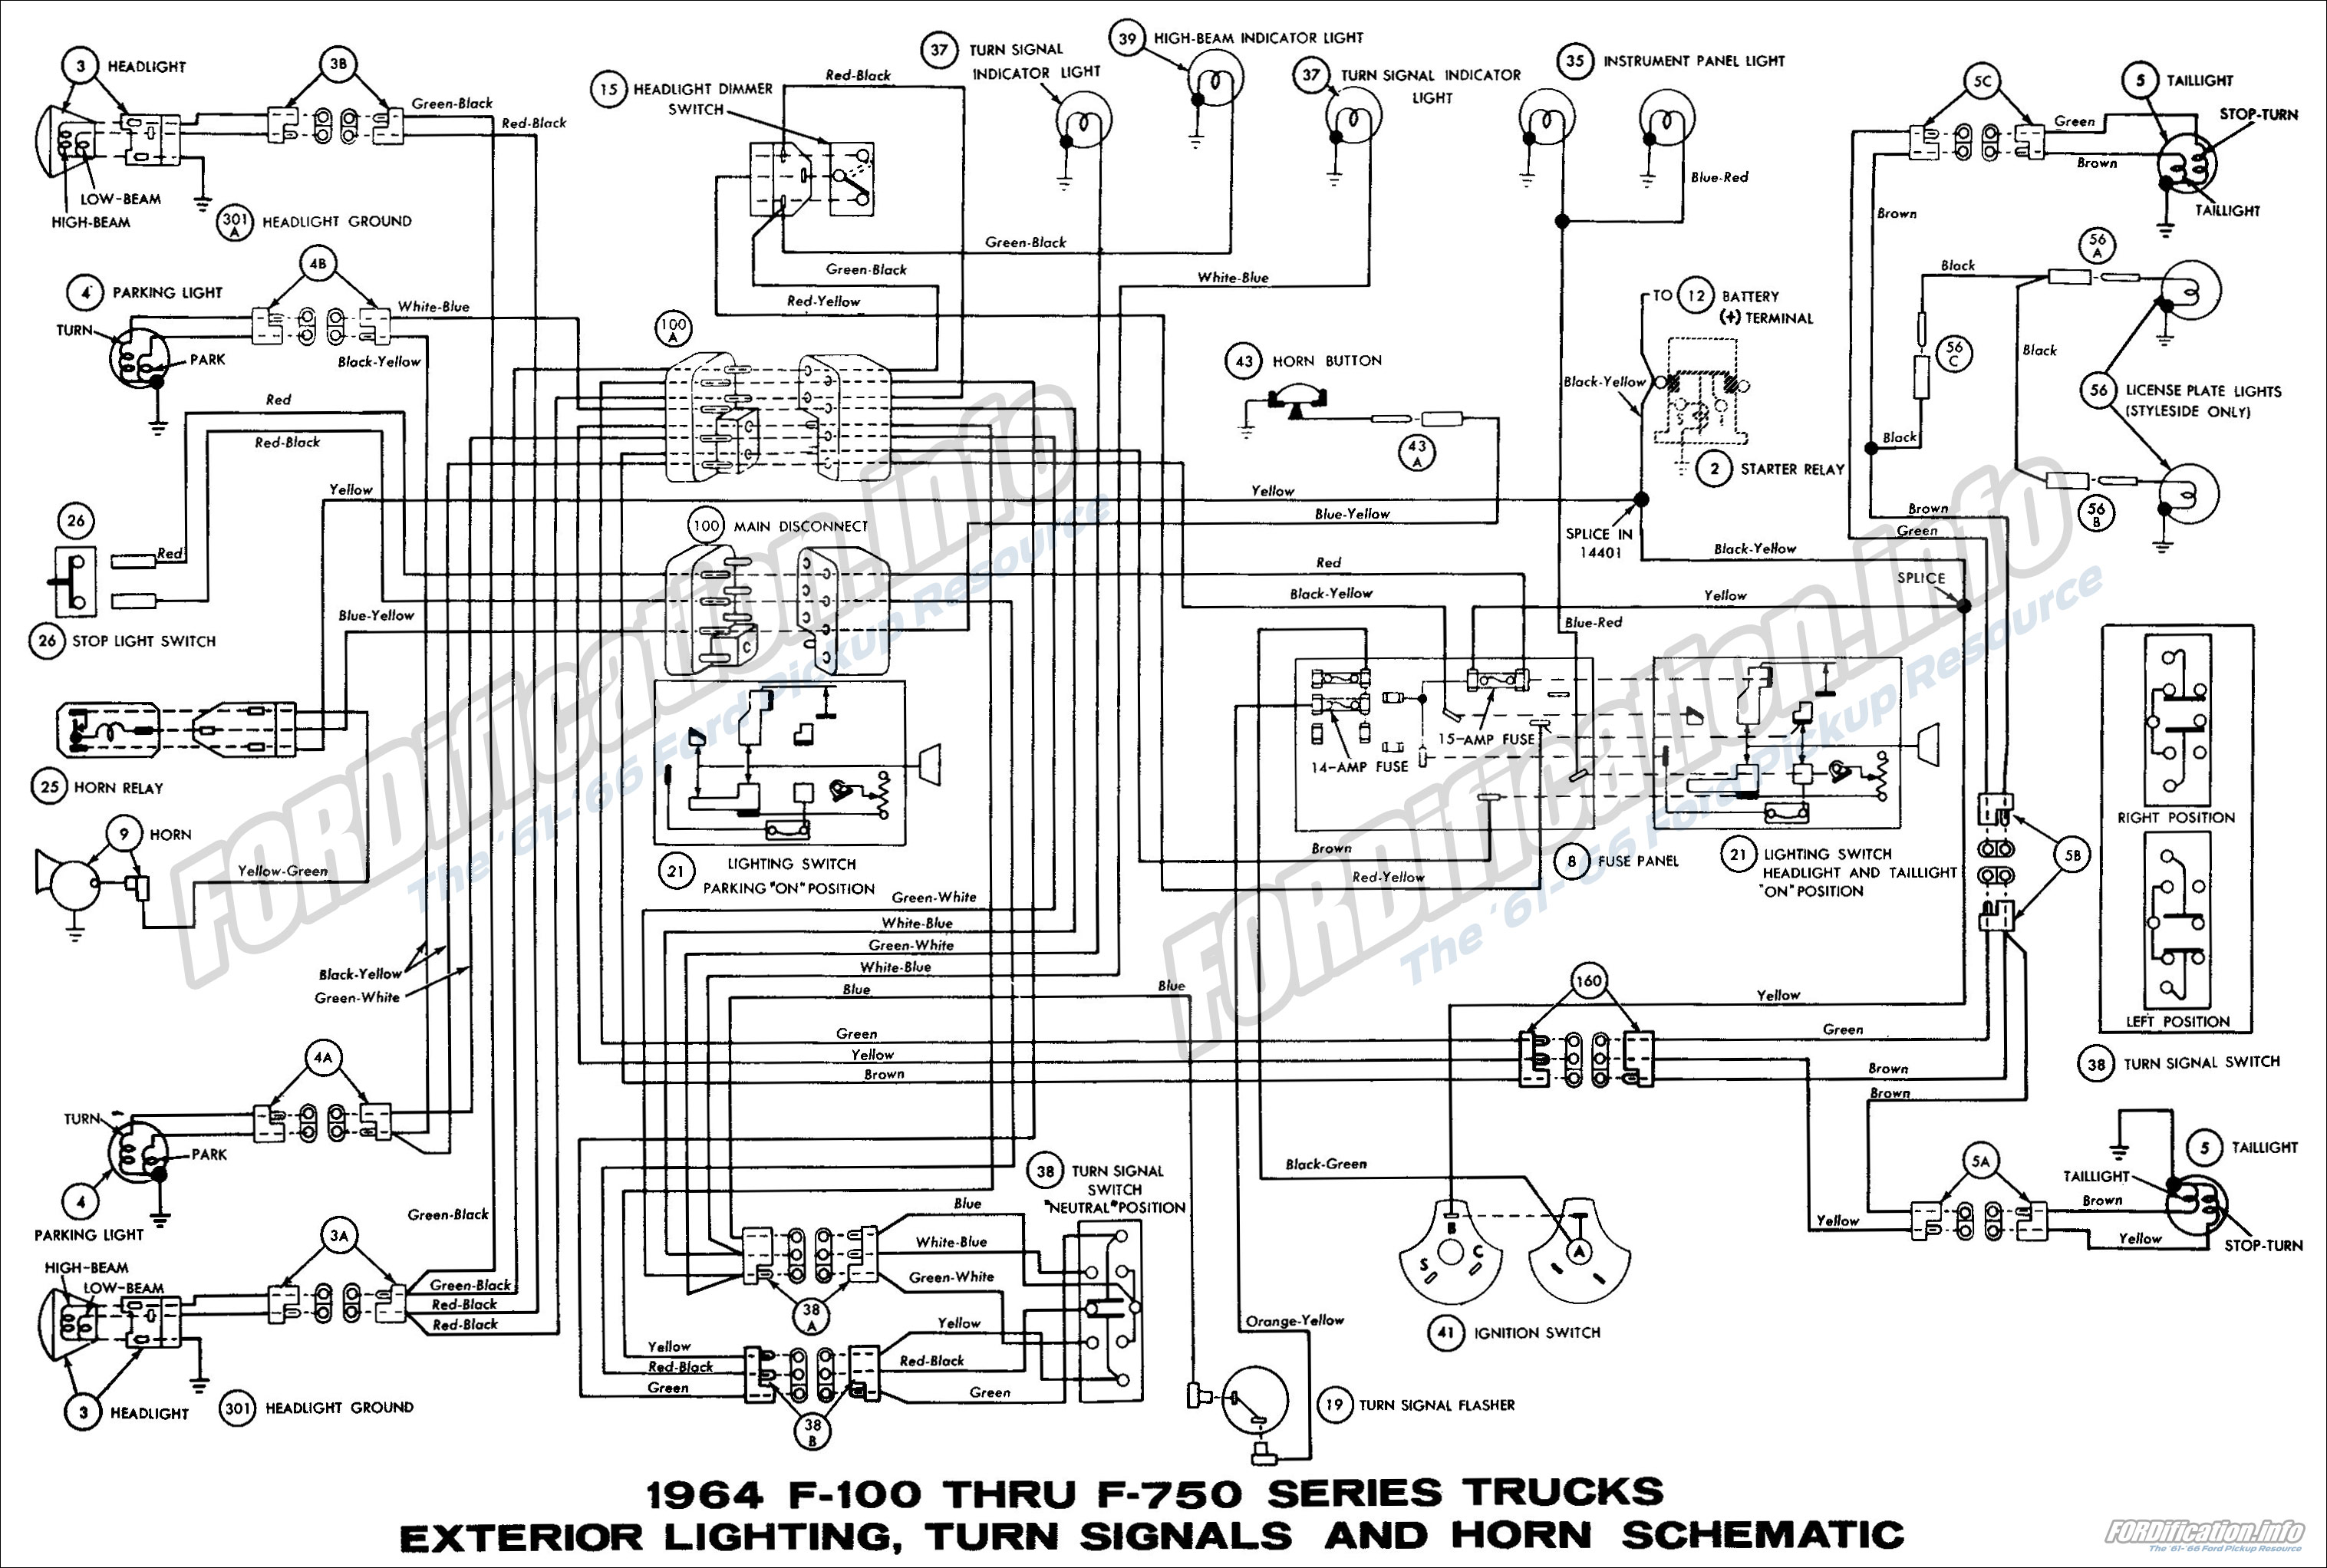 1964 ford truck wiring diagrams - fordification.info - the ... cross connect wiring diagram for 66 block wiring diagram for 66 ford f100